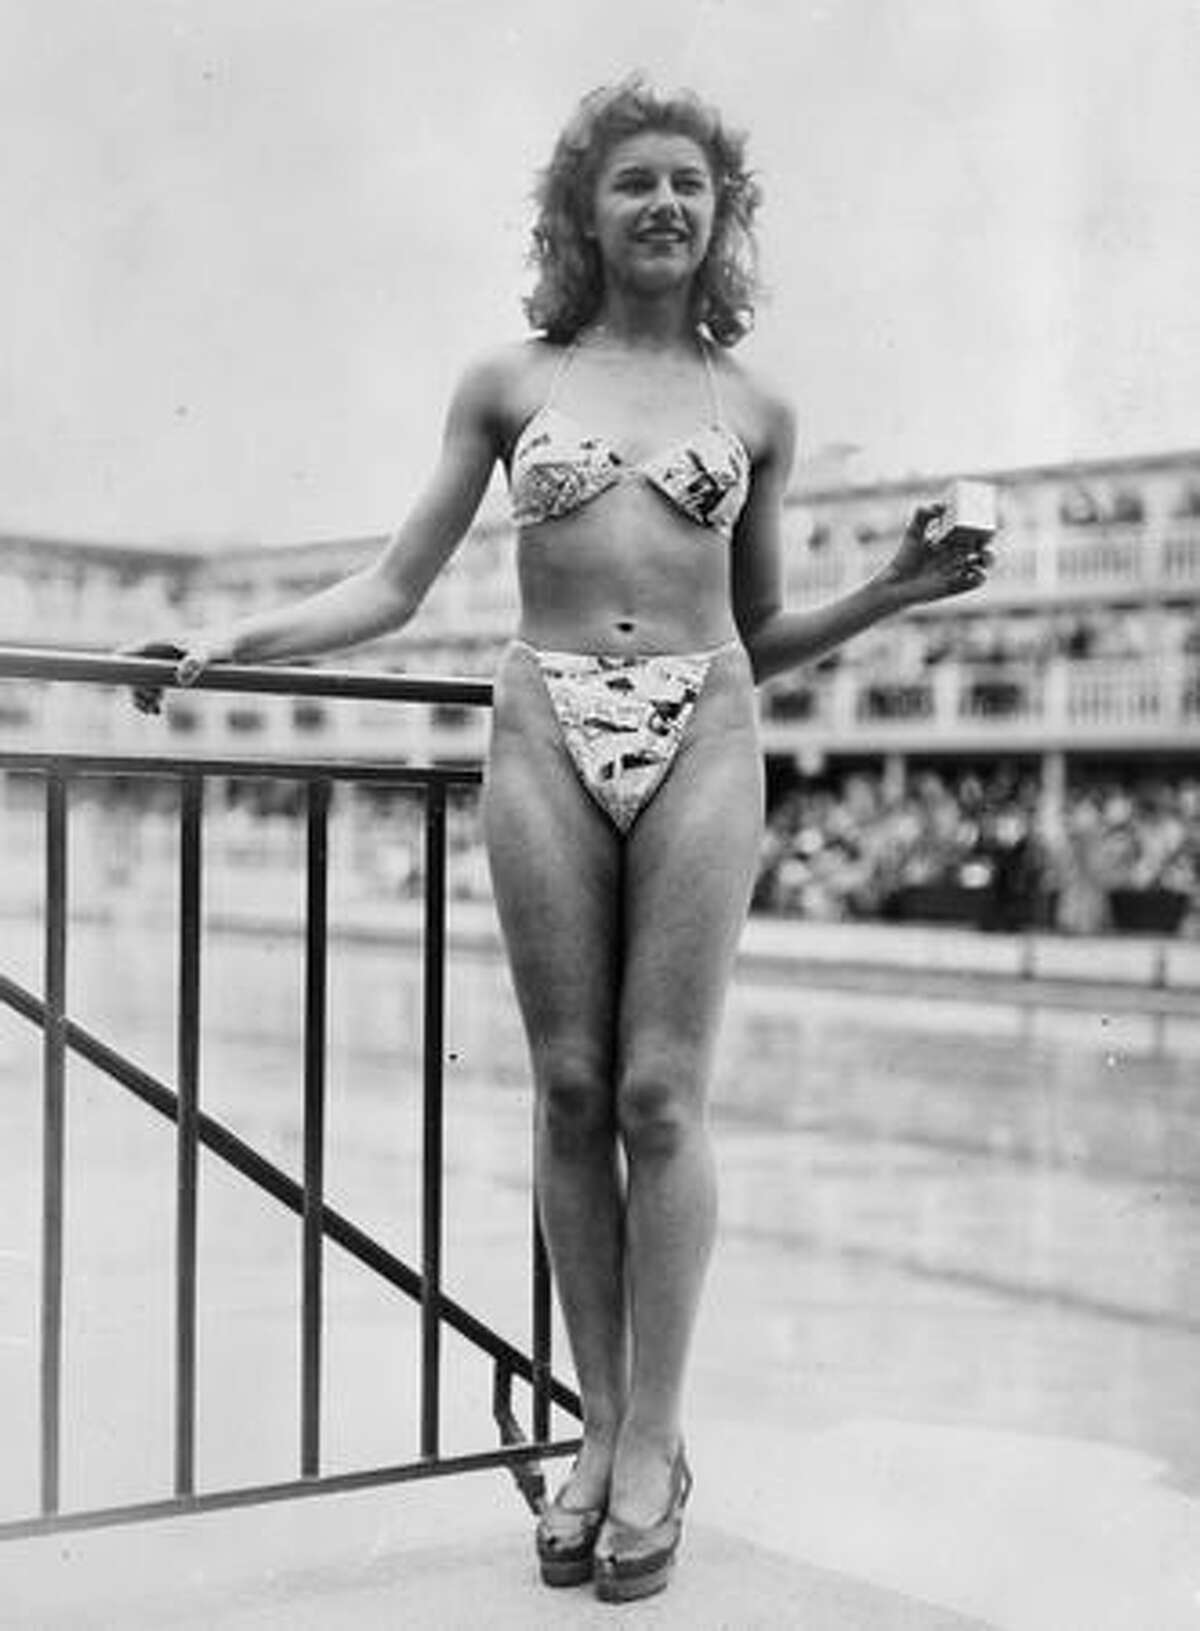 July 5, 1946: Shortly after the test of a nuclear explosion in a South Pacific atoll named Bikini, French fashion designer Louis Reard introduced a swimsuit of the same name, hoping that the new outfit would cause a similarly explosive reaction. It's fair to say that he succeeded.